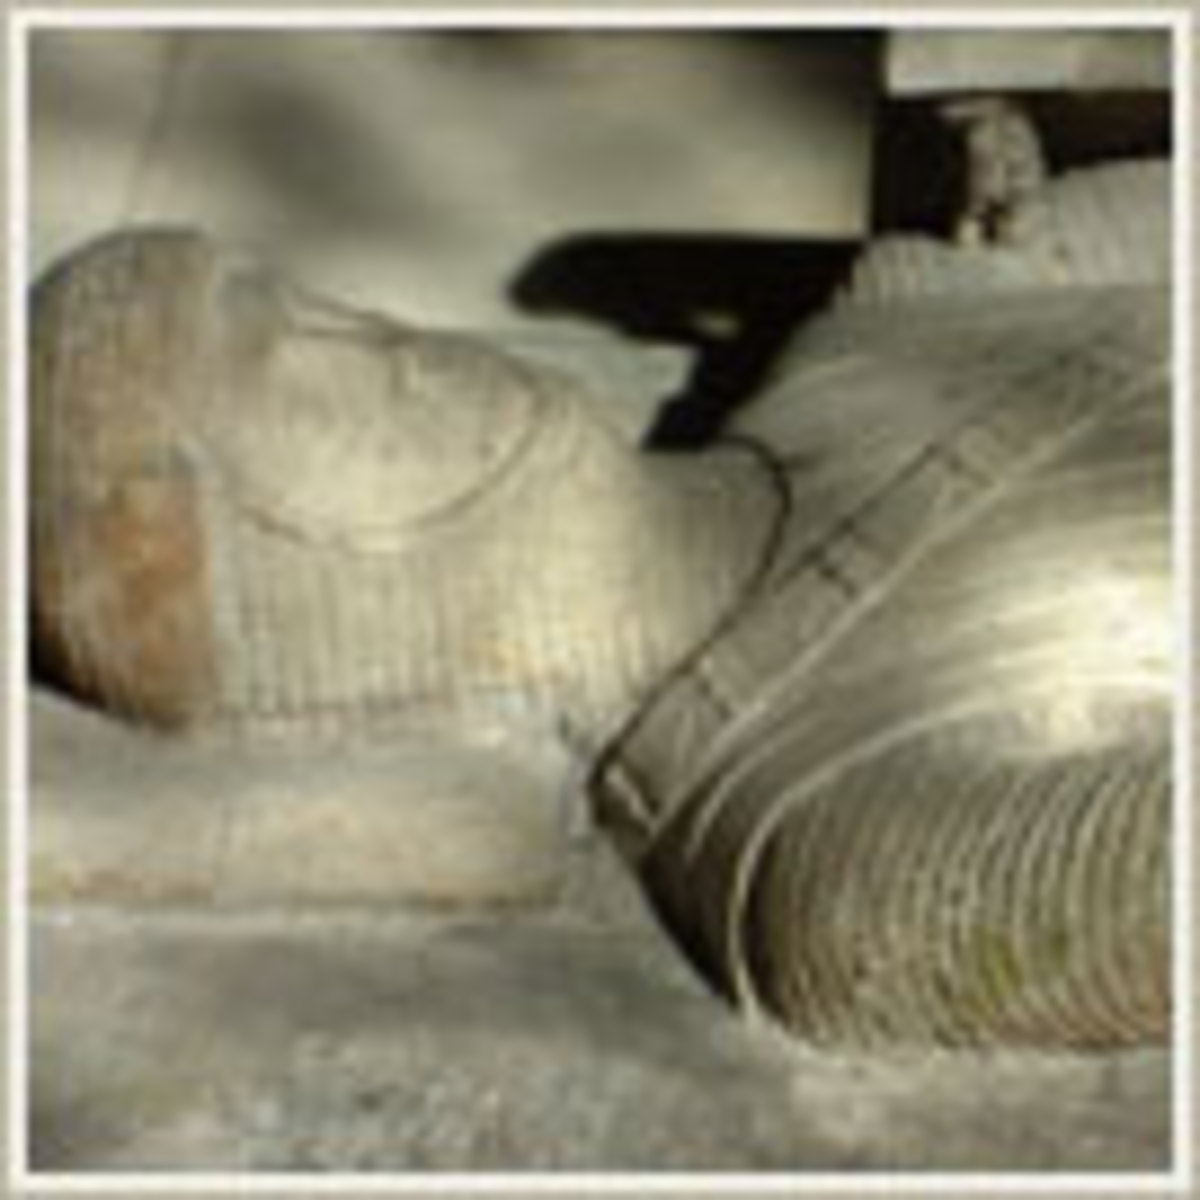 Close up image of one of the stone Knights Templar